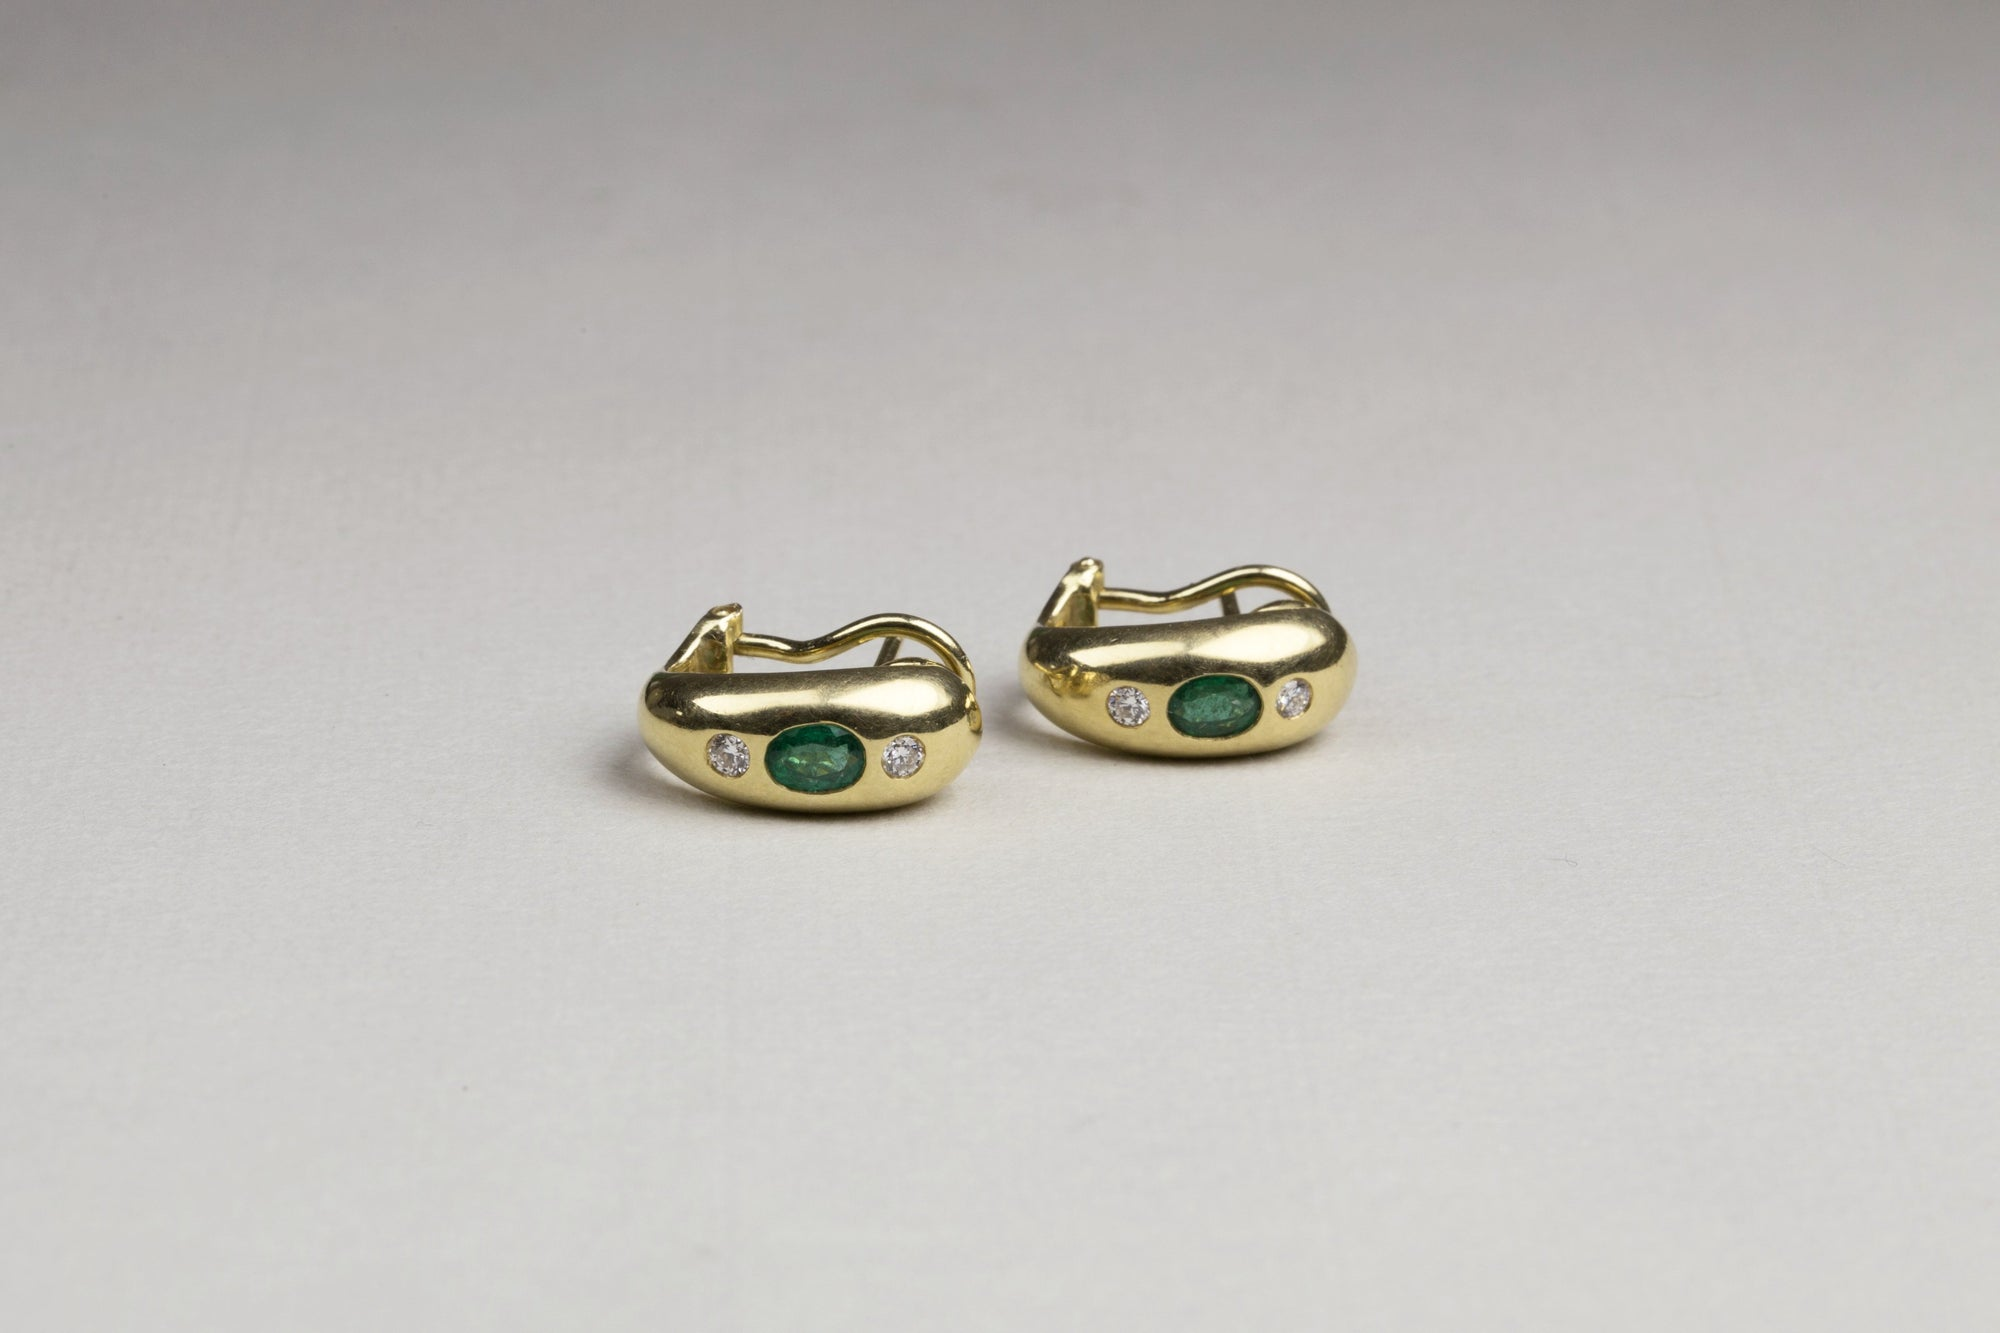 Vintage 18ct Gold Earrings with Emerald and Diamonds